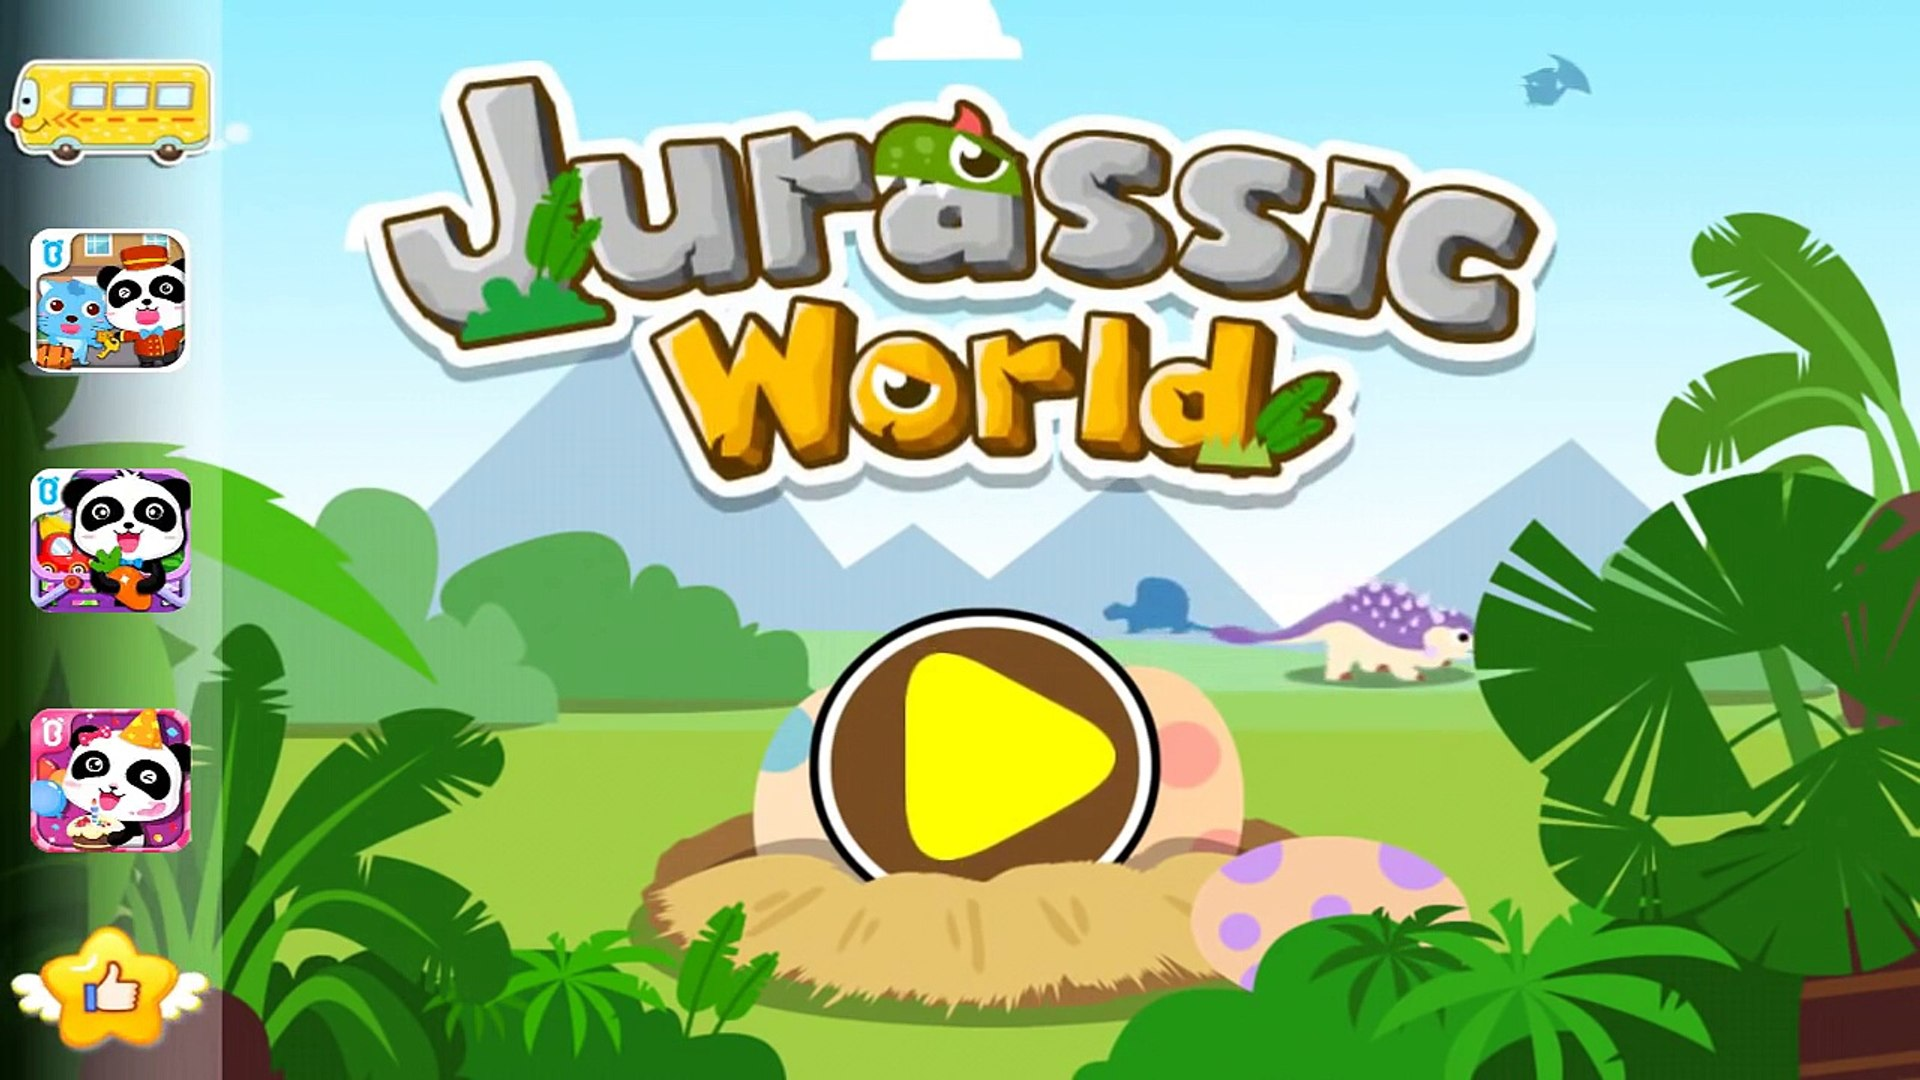 Jurassic World Dinosaurs (By BabyBus) Kids learn Dinosaurs With Education - Games for Kids